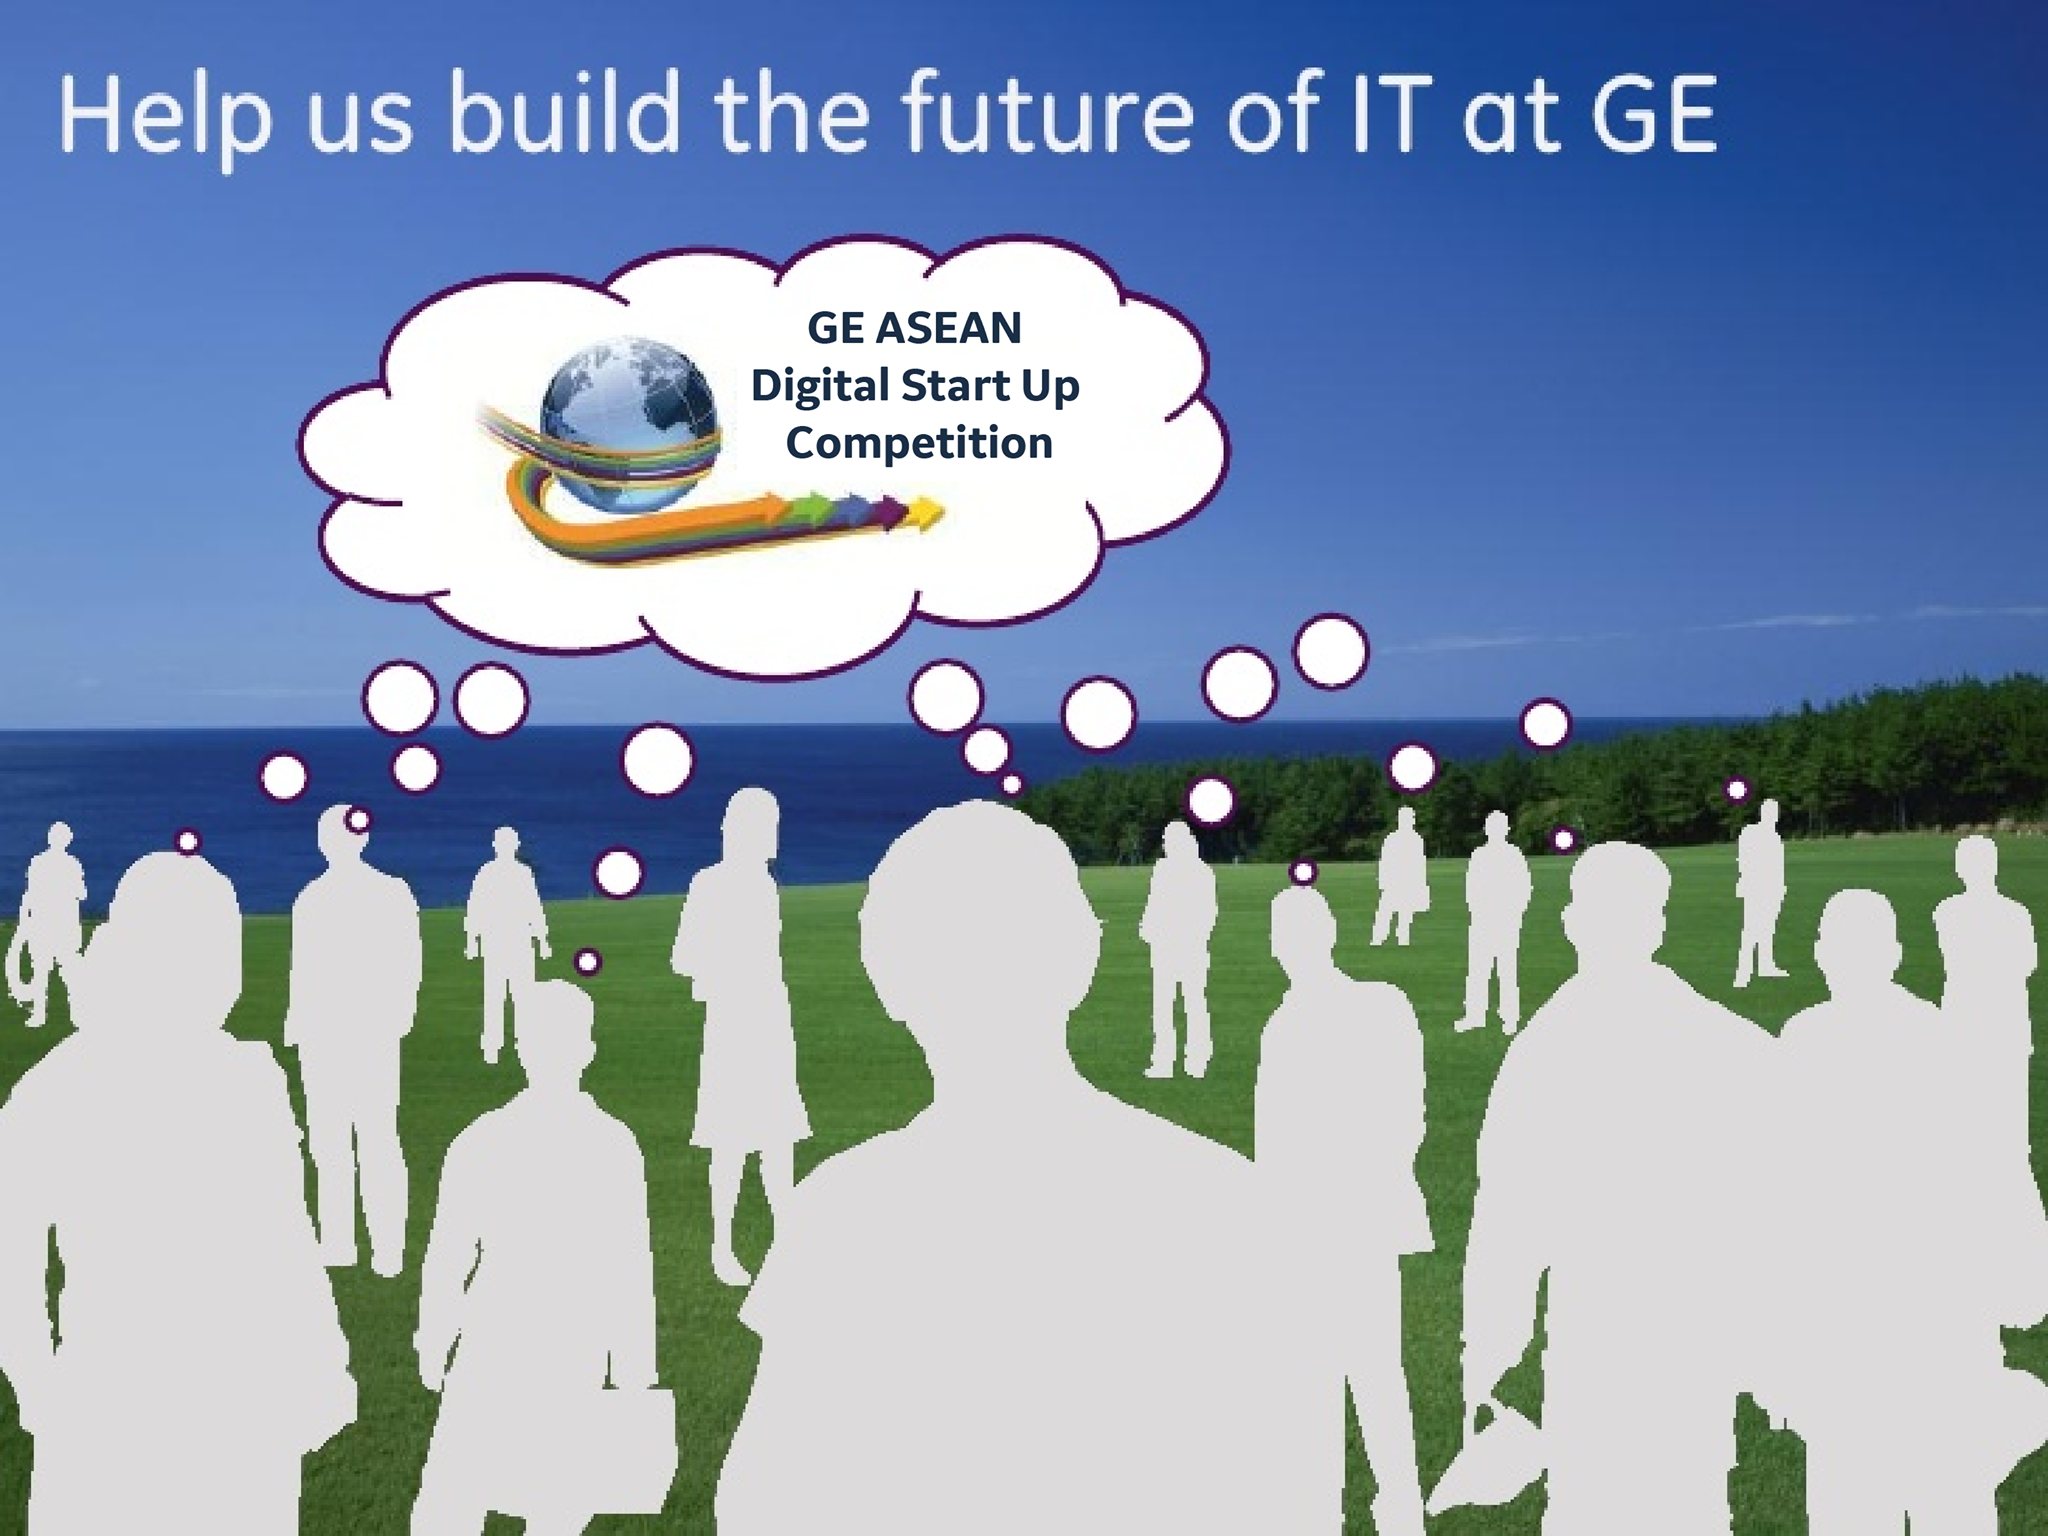 ge kicks off asean digital start up competition 2017